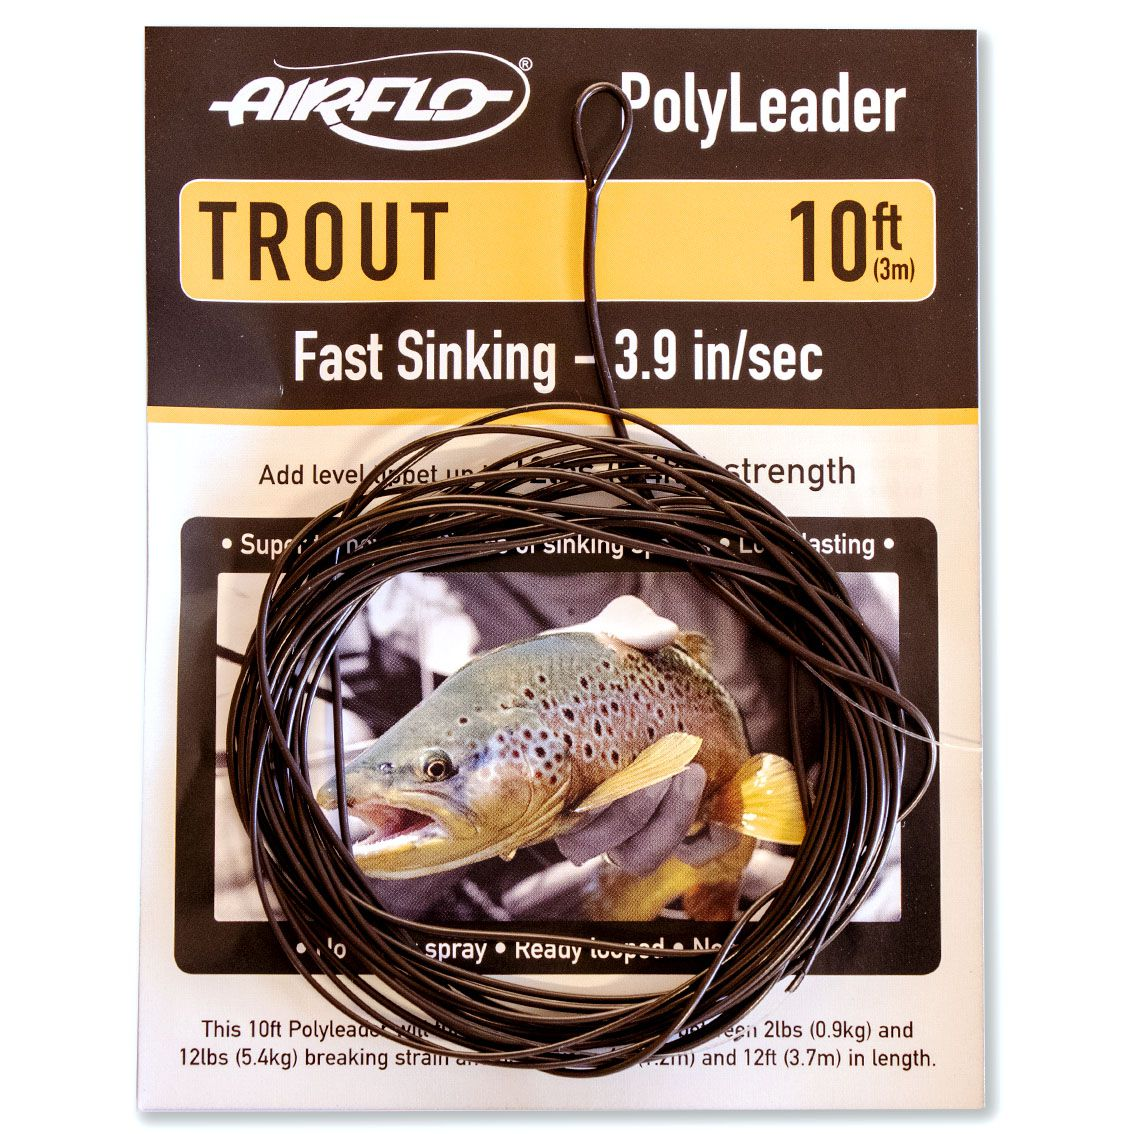 Polyleader Airflo Trout 10' (Fast Sinking)